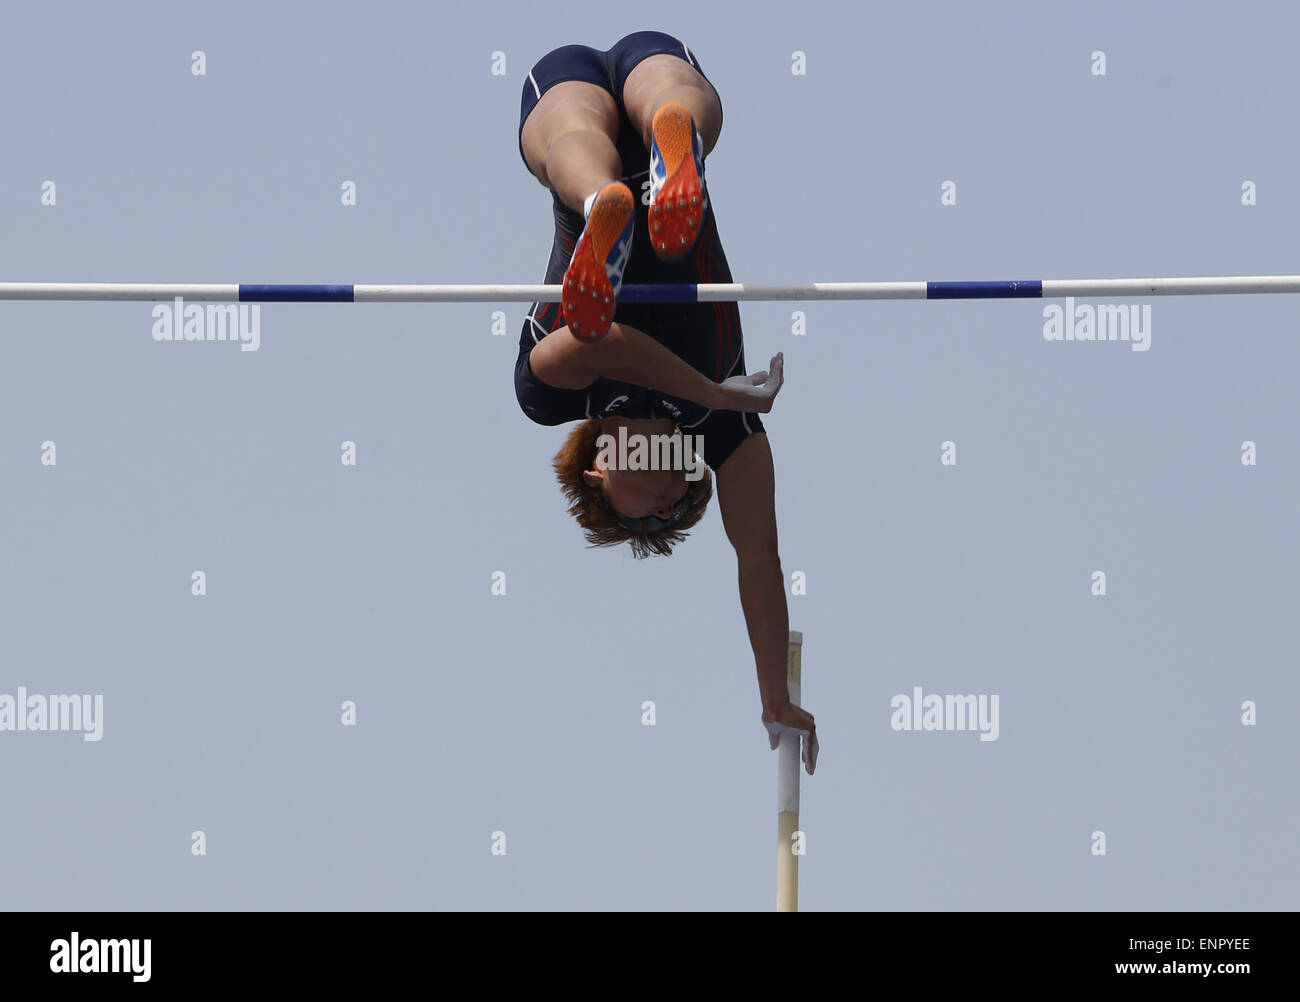 Tokyo, Japan. 10th May, 2015. Han Duhyeon of South Korea competes during the men's pole vault at Seiko Golden - Stock Image